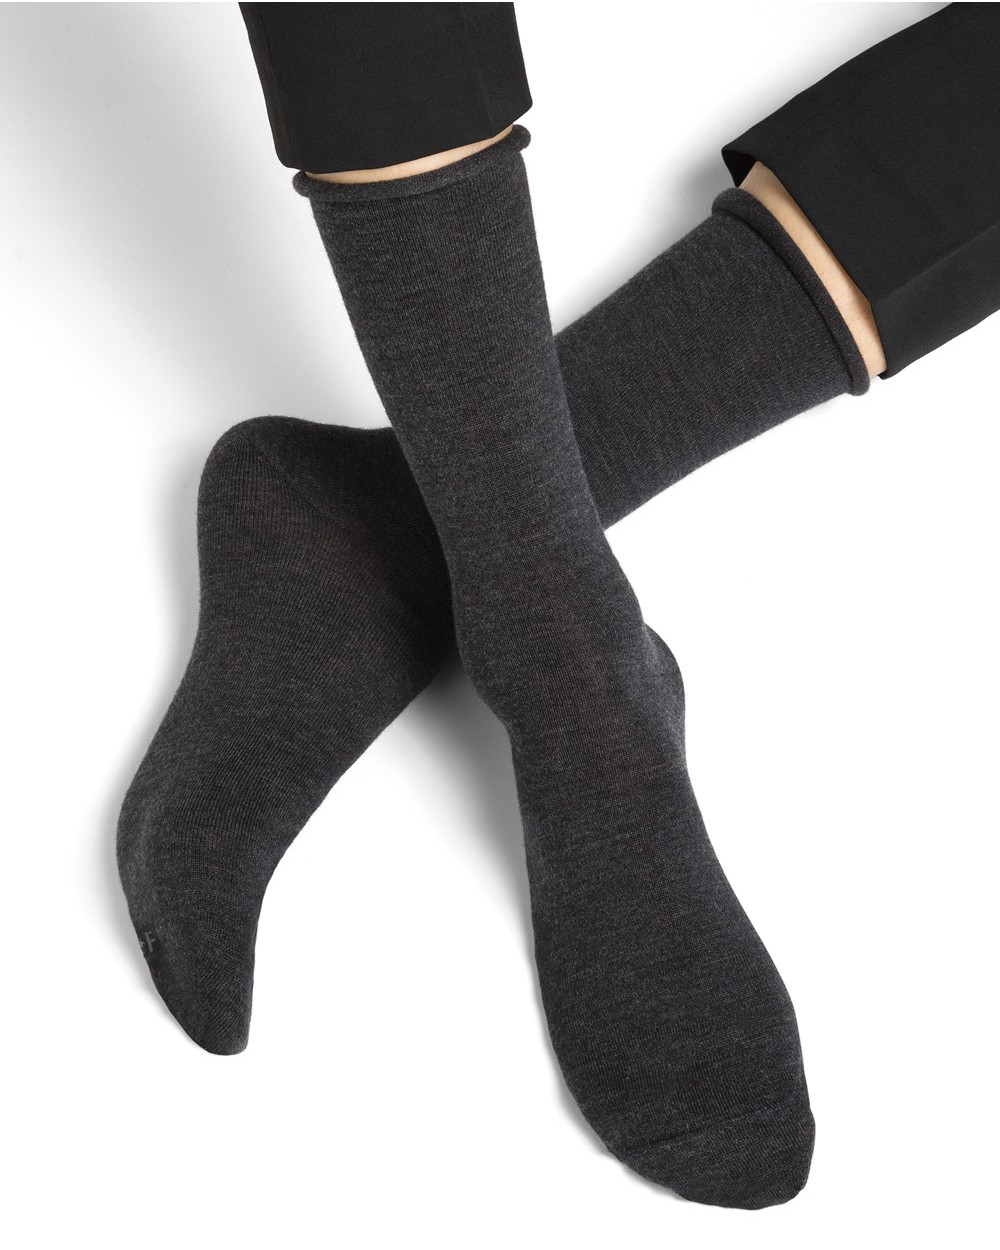 Fine wool socks with rolled edge